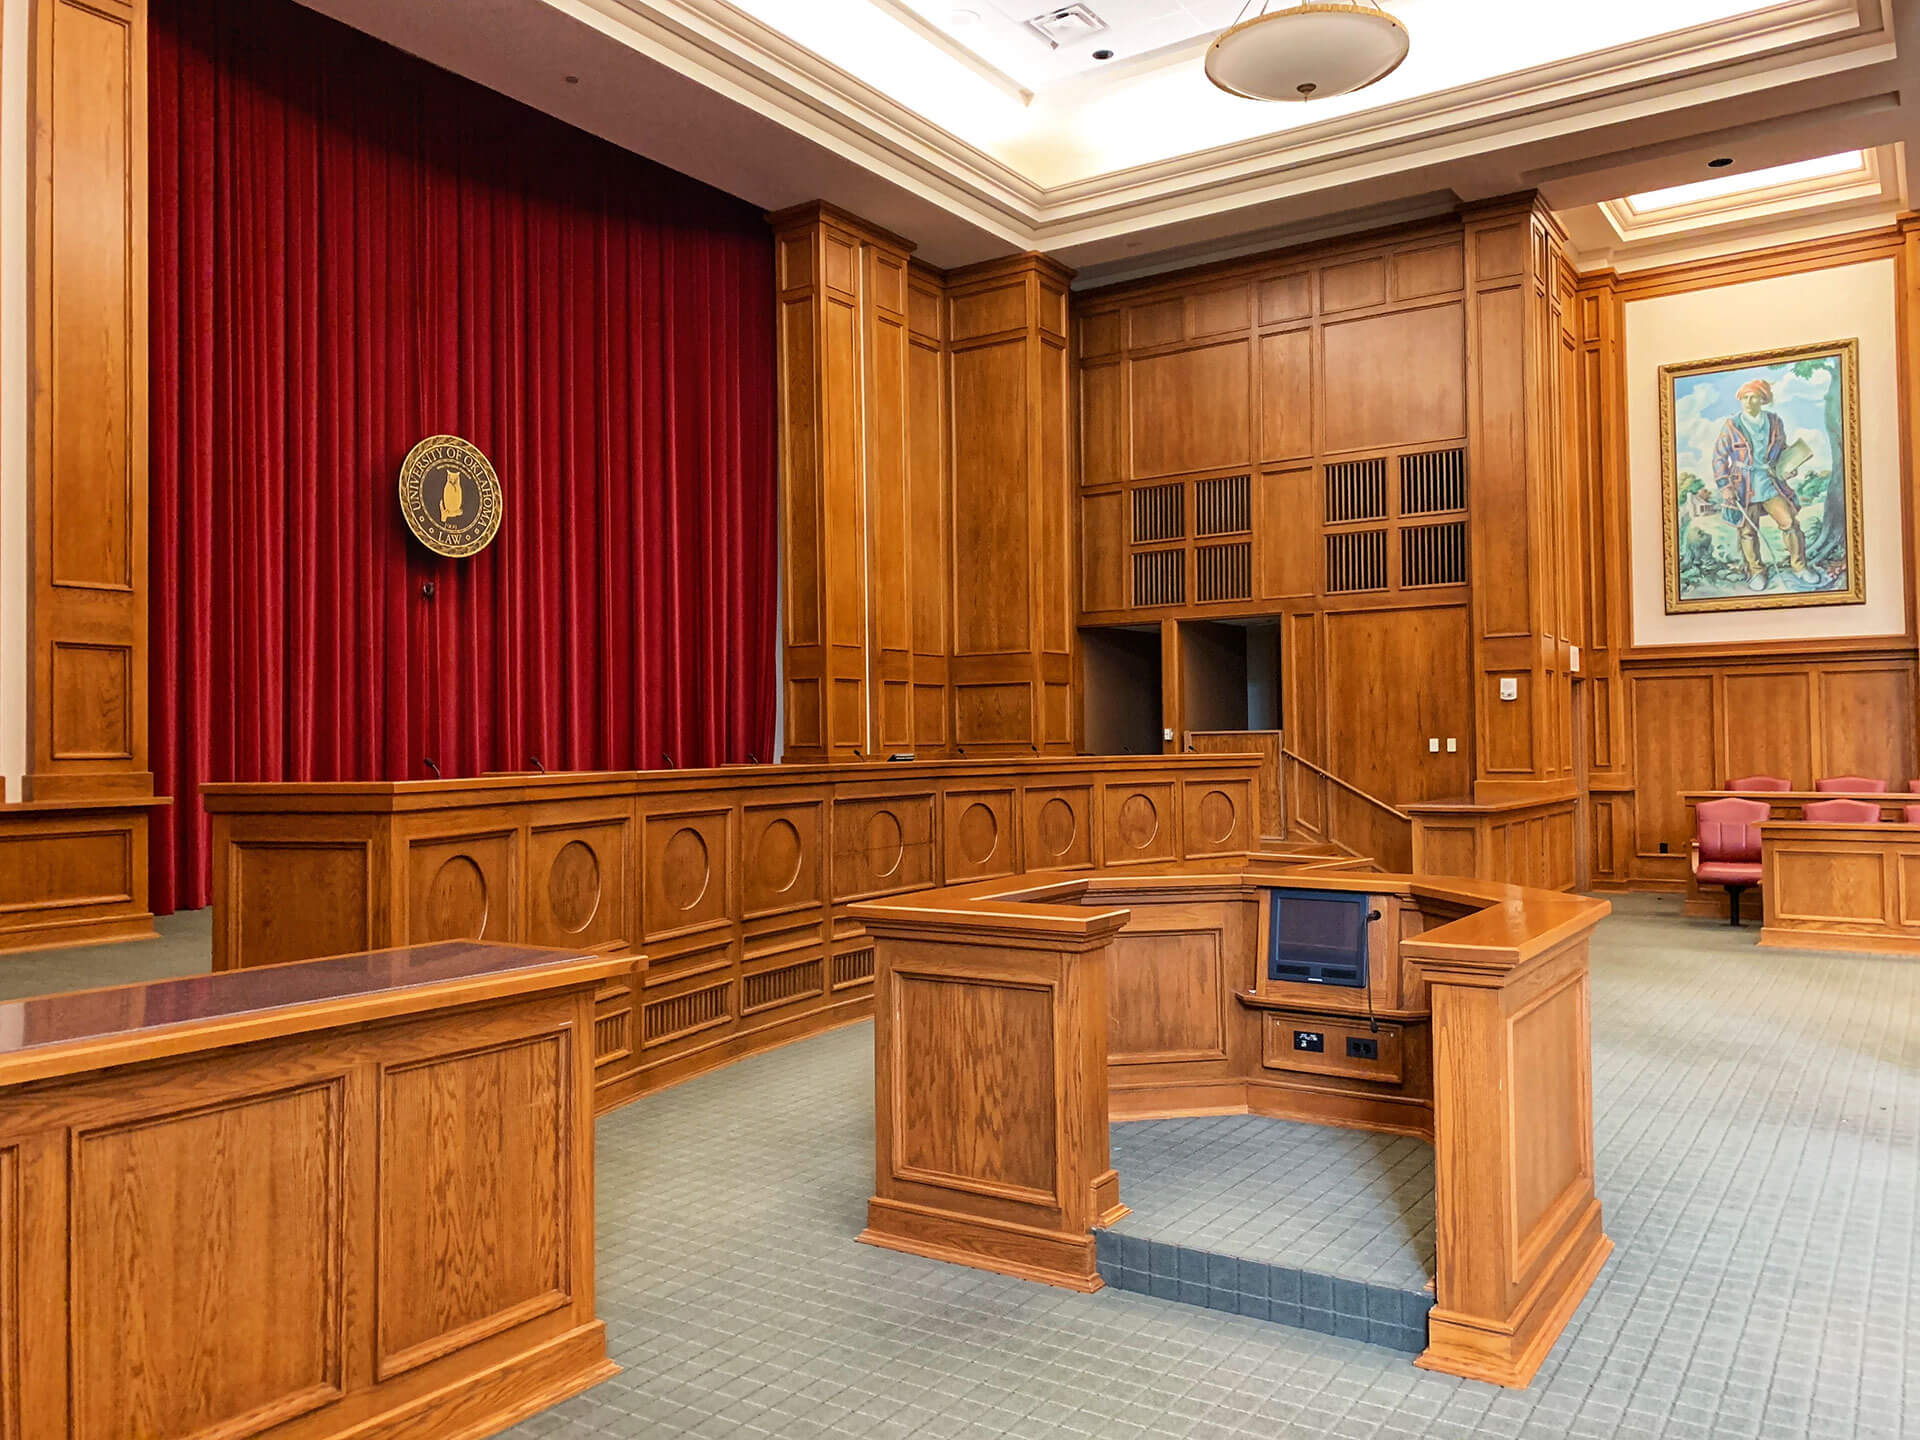 The Central Bankruptcy Court